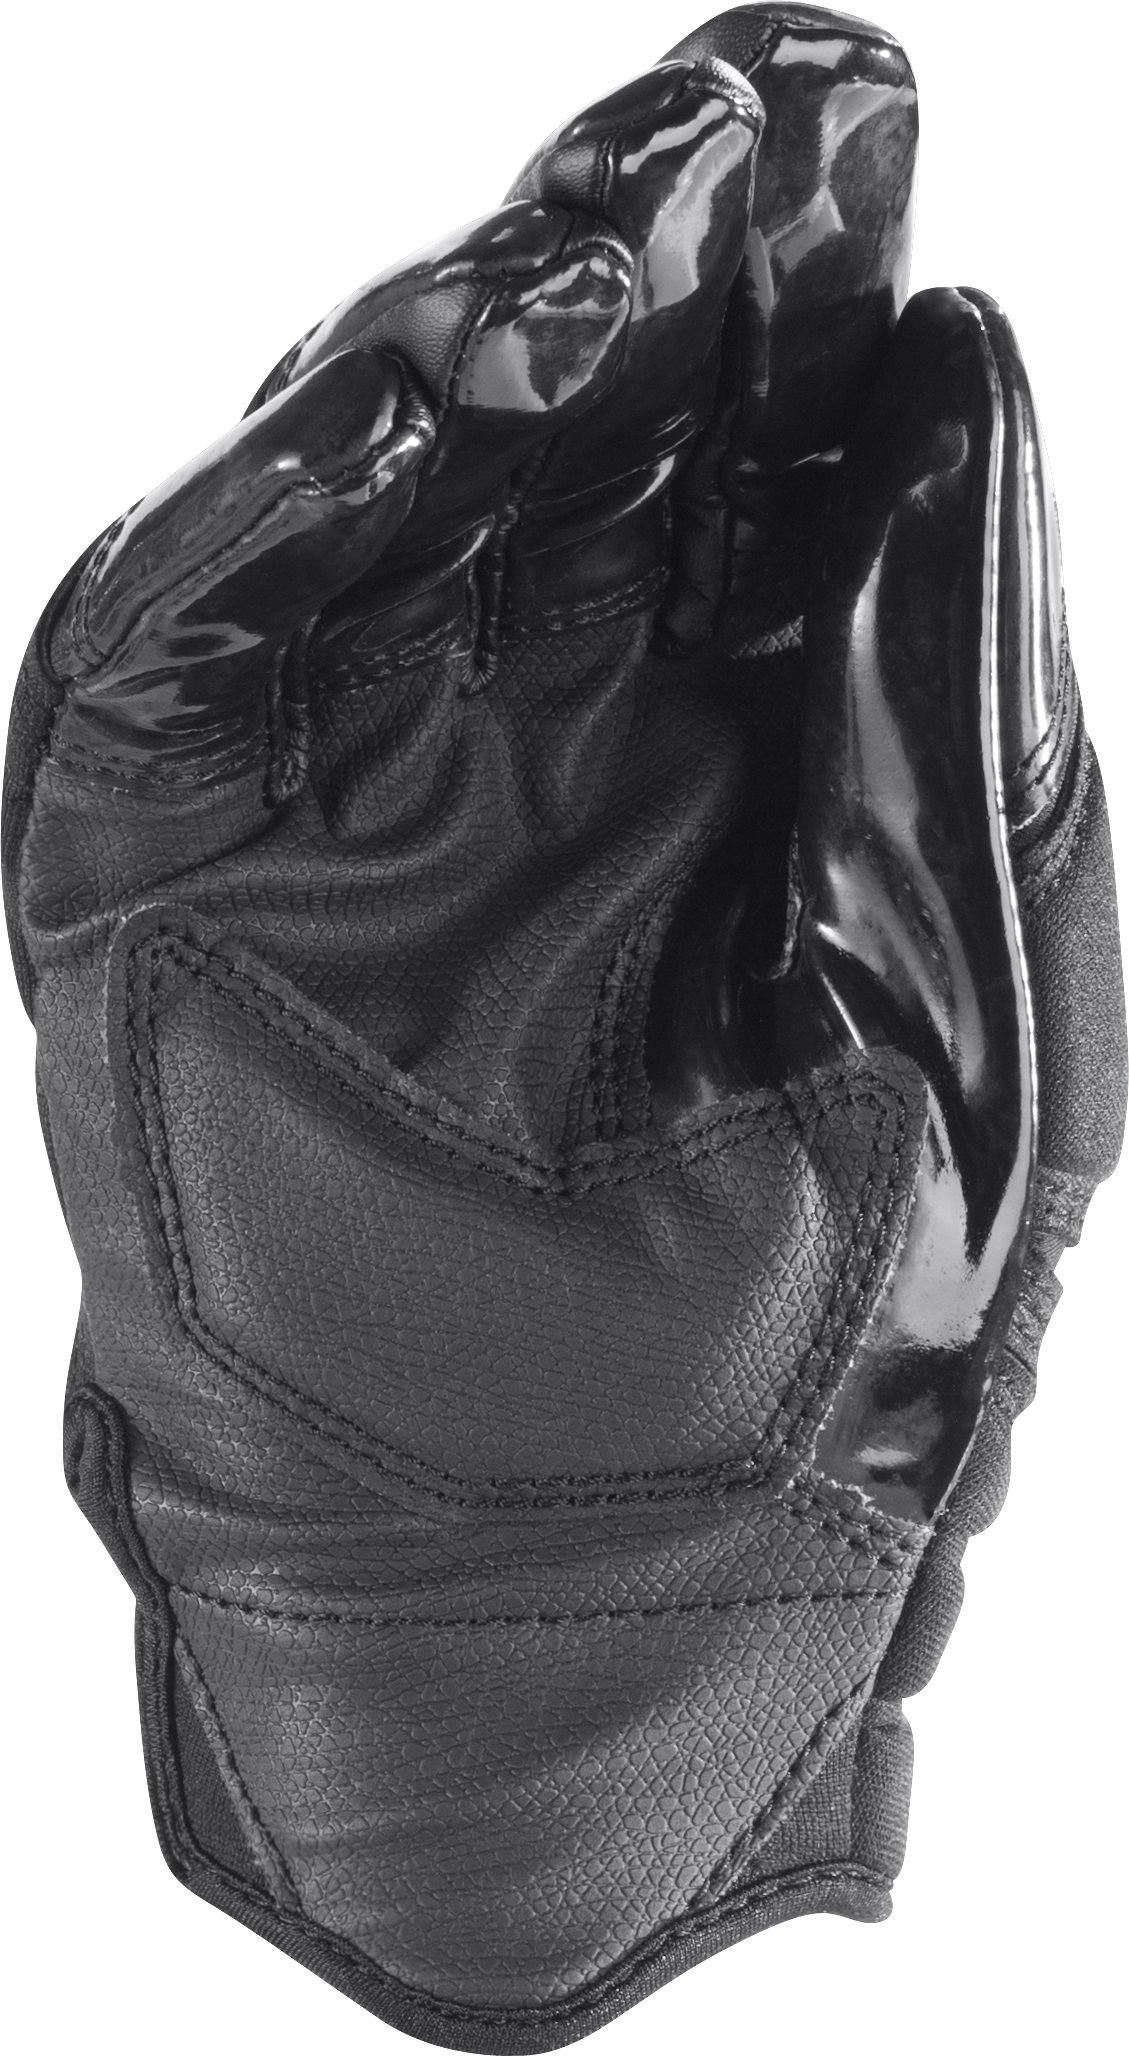 Youth Combat II Full Finger Gloves, Black